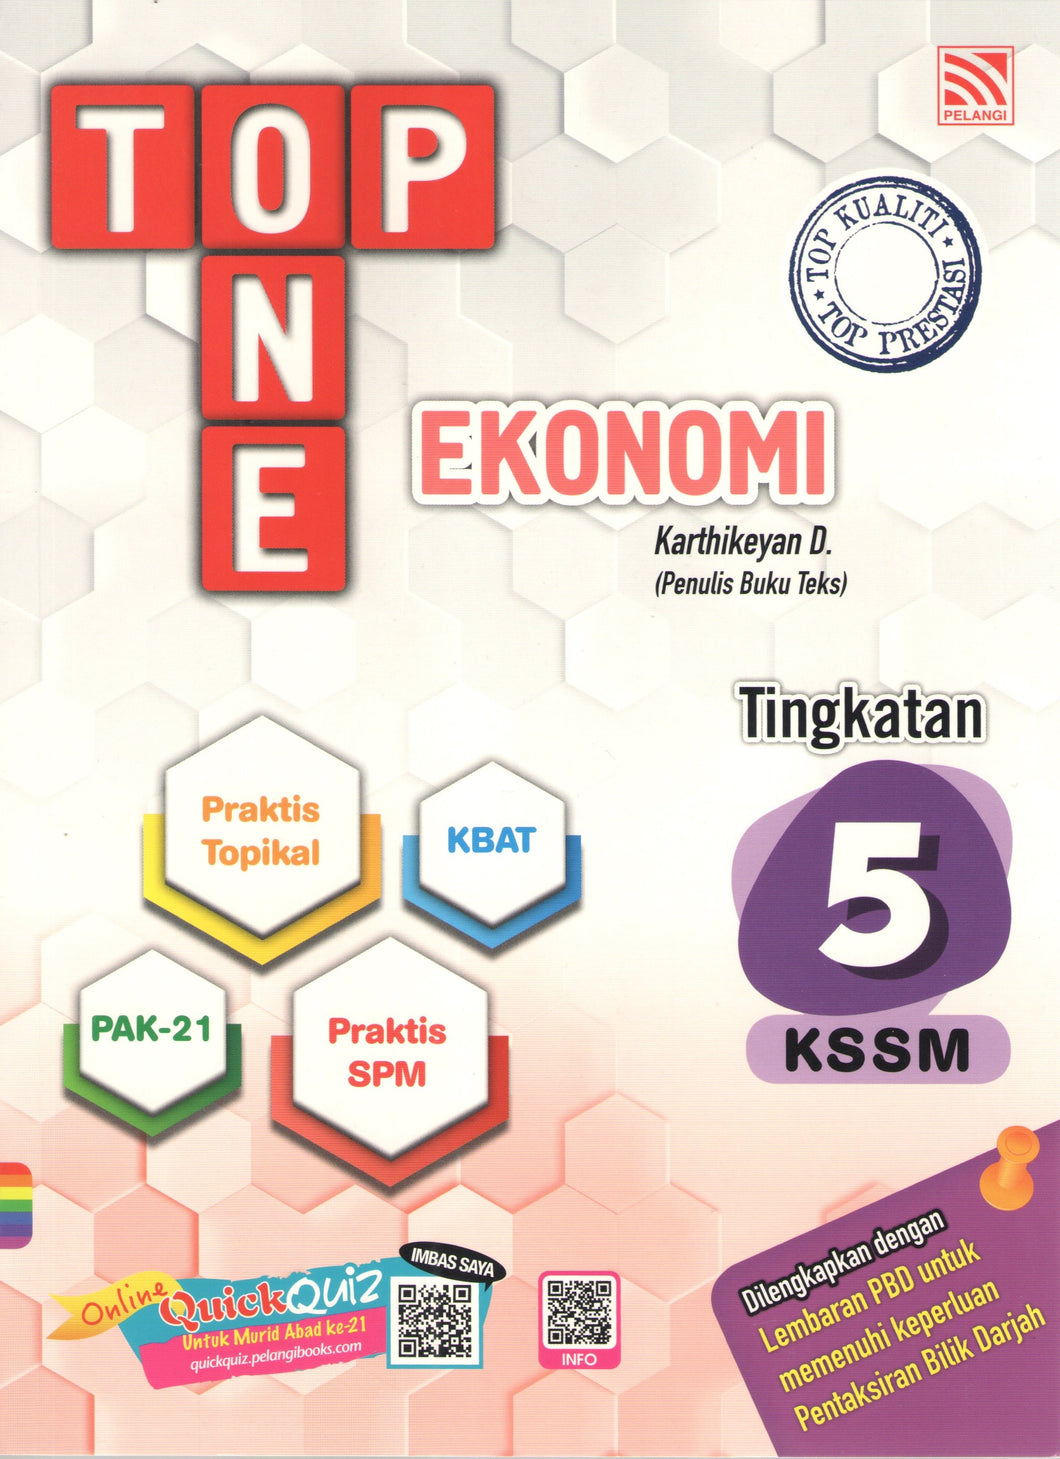 Top One Ekonomi Tingkatan 5